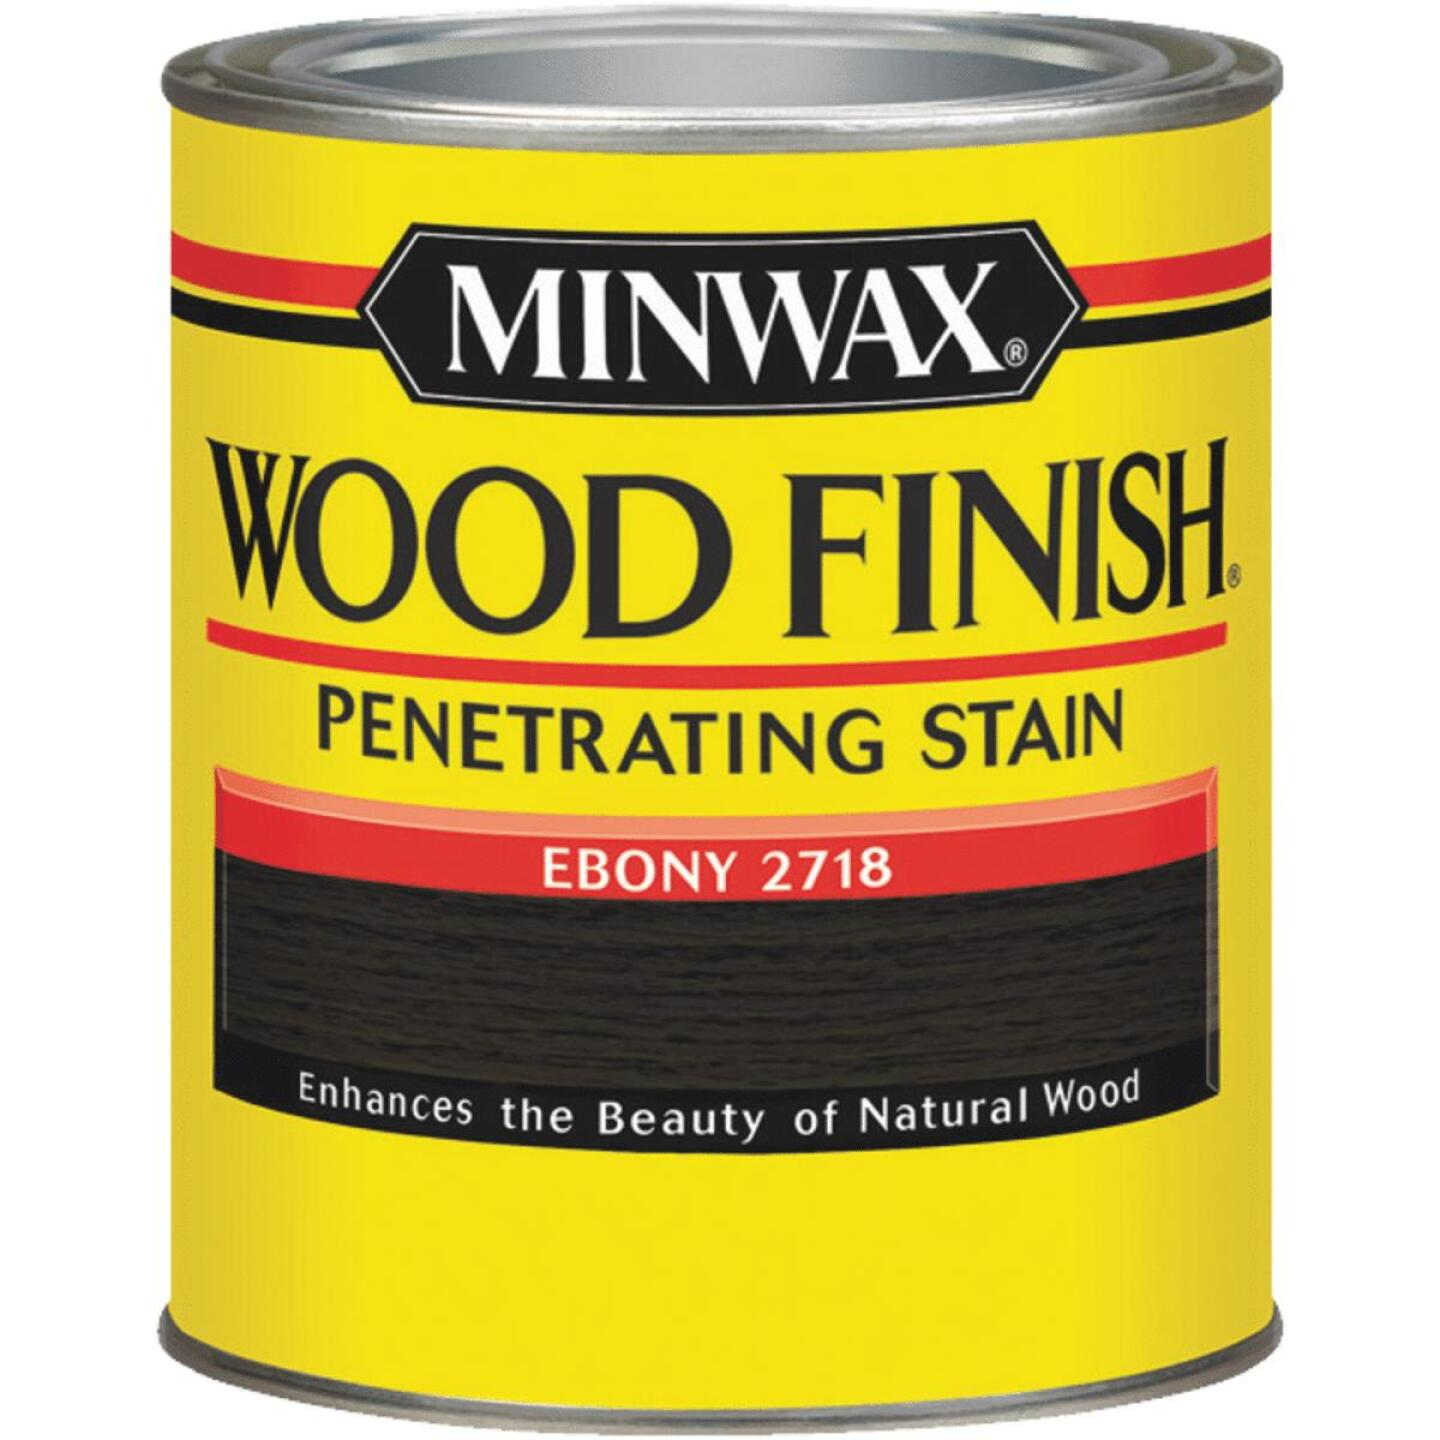 Minwax Wood Finish Penetrating Stain, Ebony, 1/2 Pt. Image 1